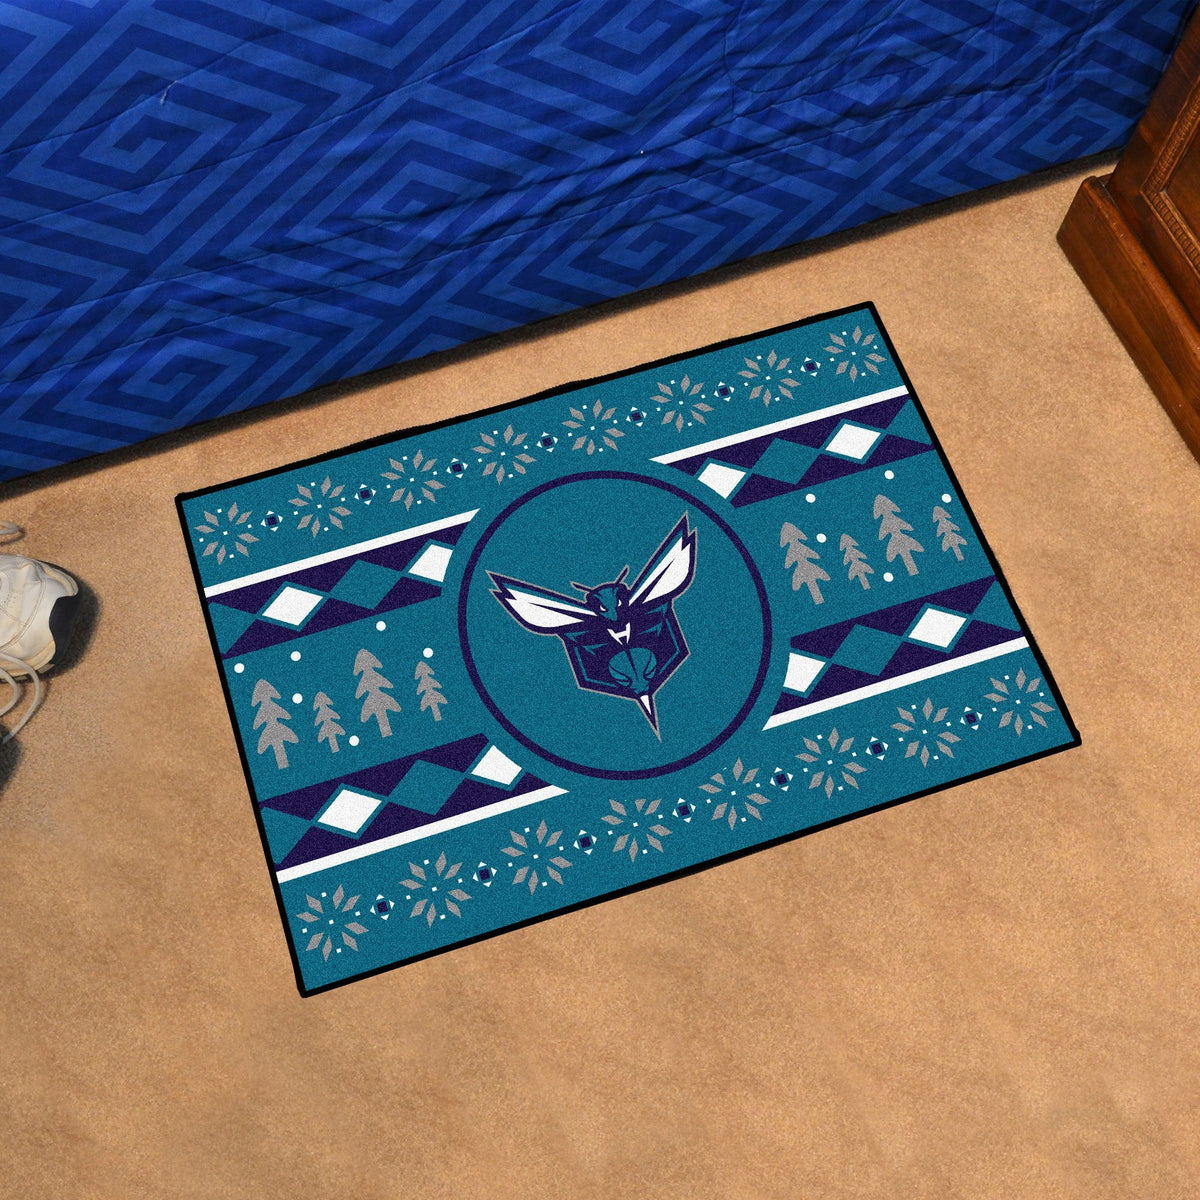 NBA - Holiday Sweater Starter Mat NBA Mats, Rectangular Mats, Holiday Sweater Starter Mat, NBA, Home Fan Mats Charlotte Hornets